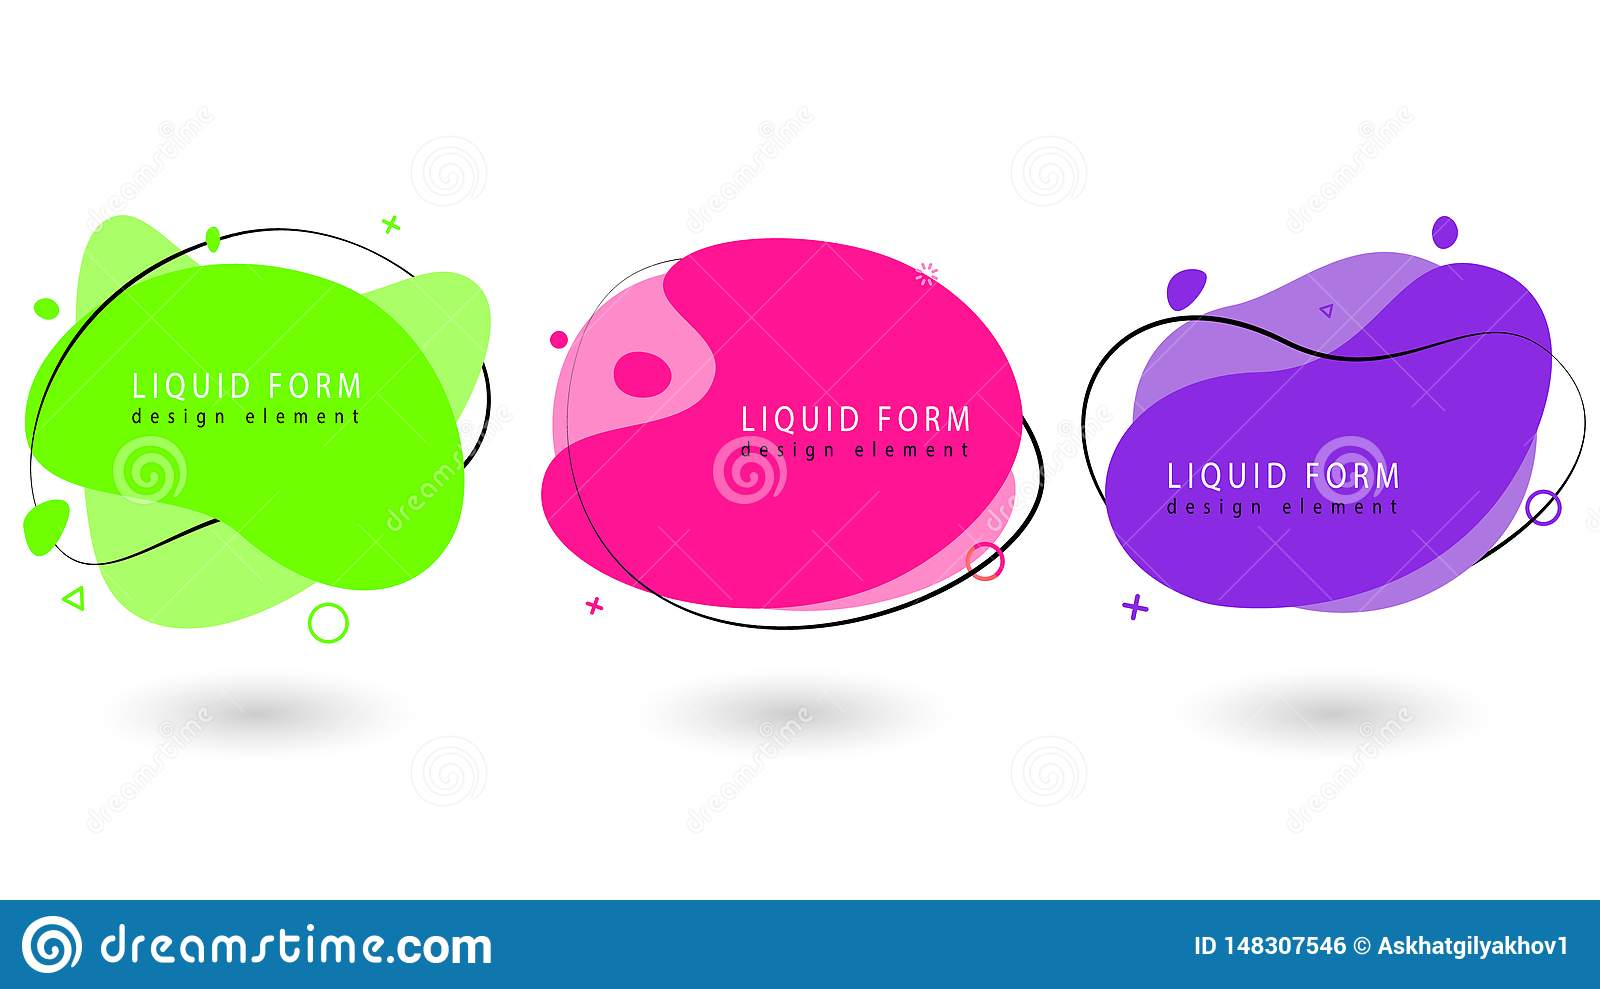 fabfb349ce86e Modern trendy abstract banner set. Flat geometric fluid elements with  Proton Purple, UFO green and Plastic Pink colors. Liquid elements for  flyer, ...